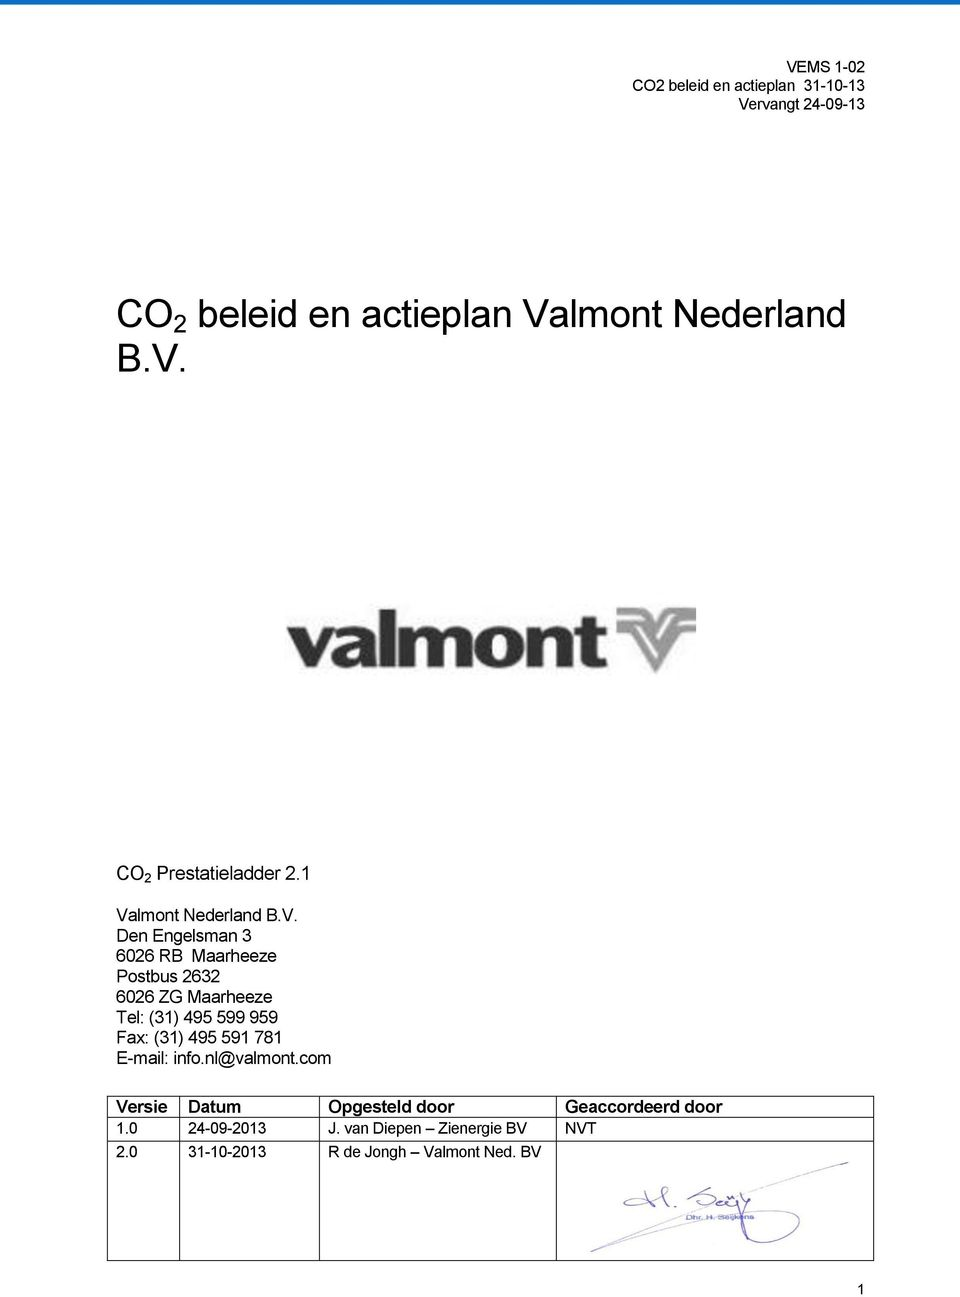 Tel: (31) 495 599 959 Fax: (31) 495 591 781 E-mail: info.nl@valmont.